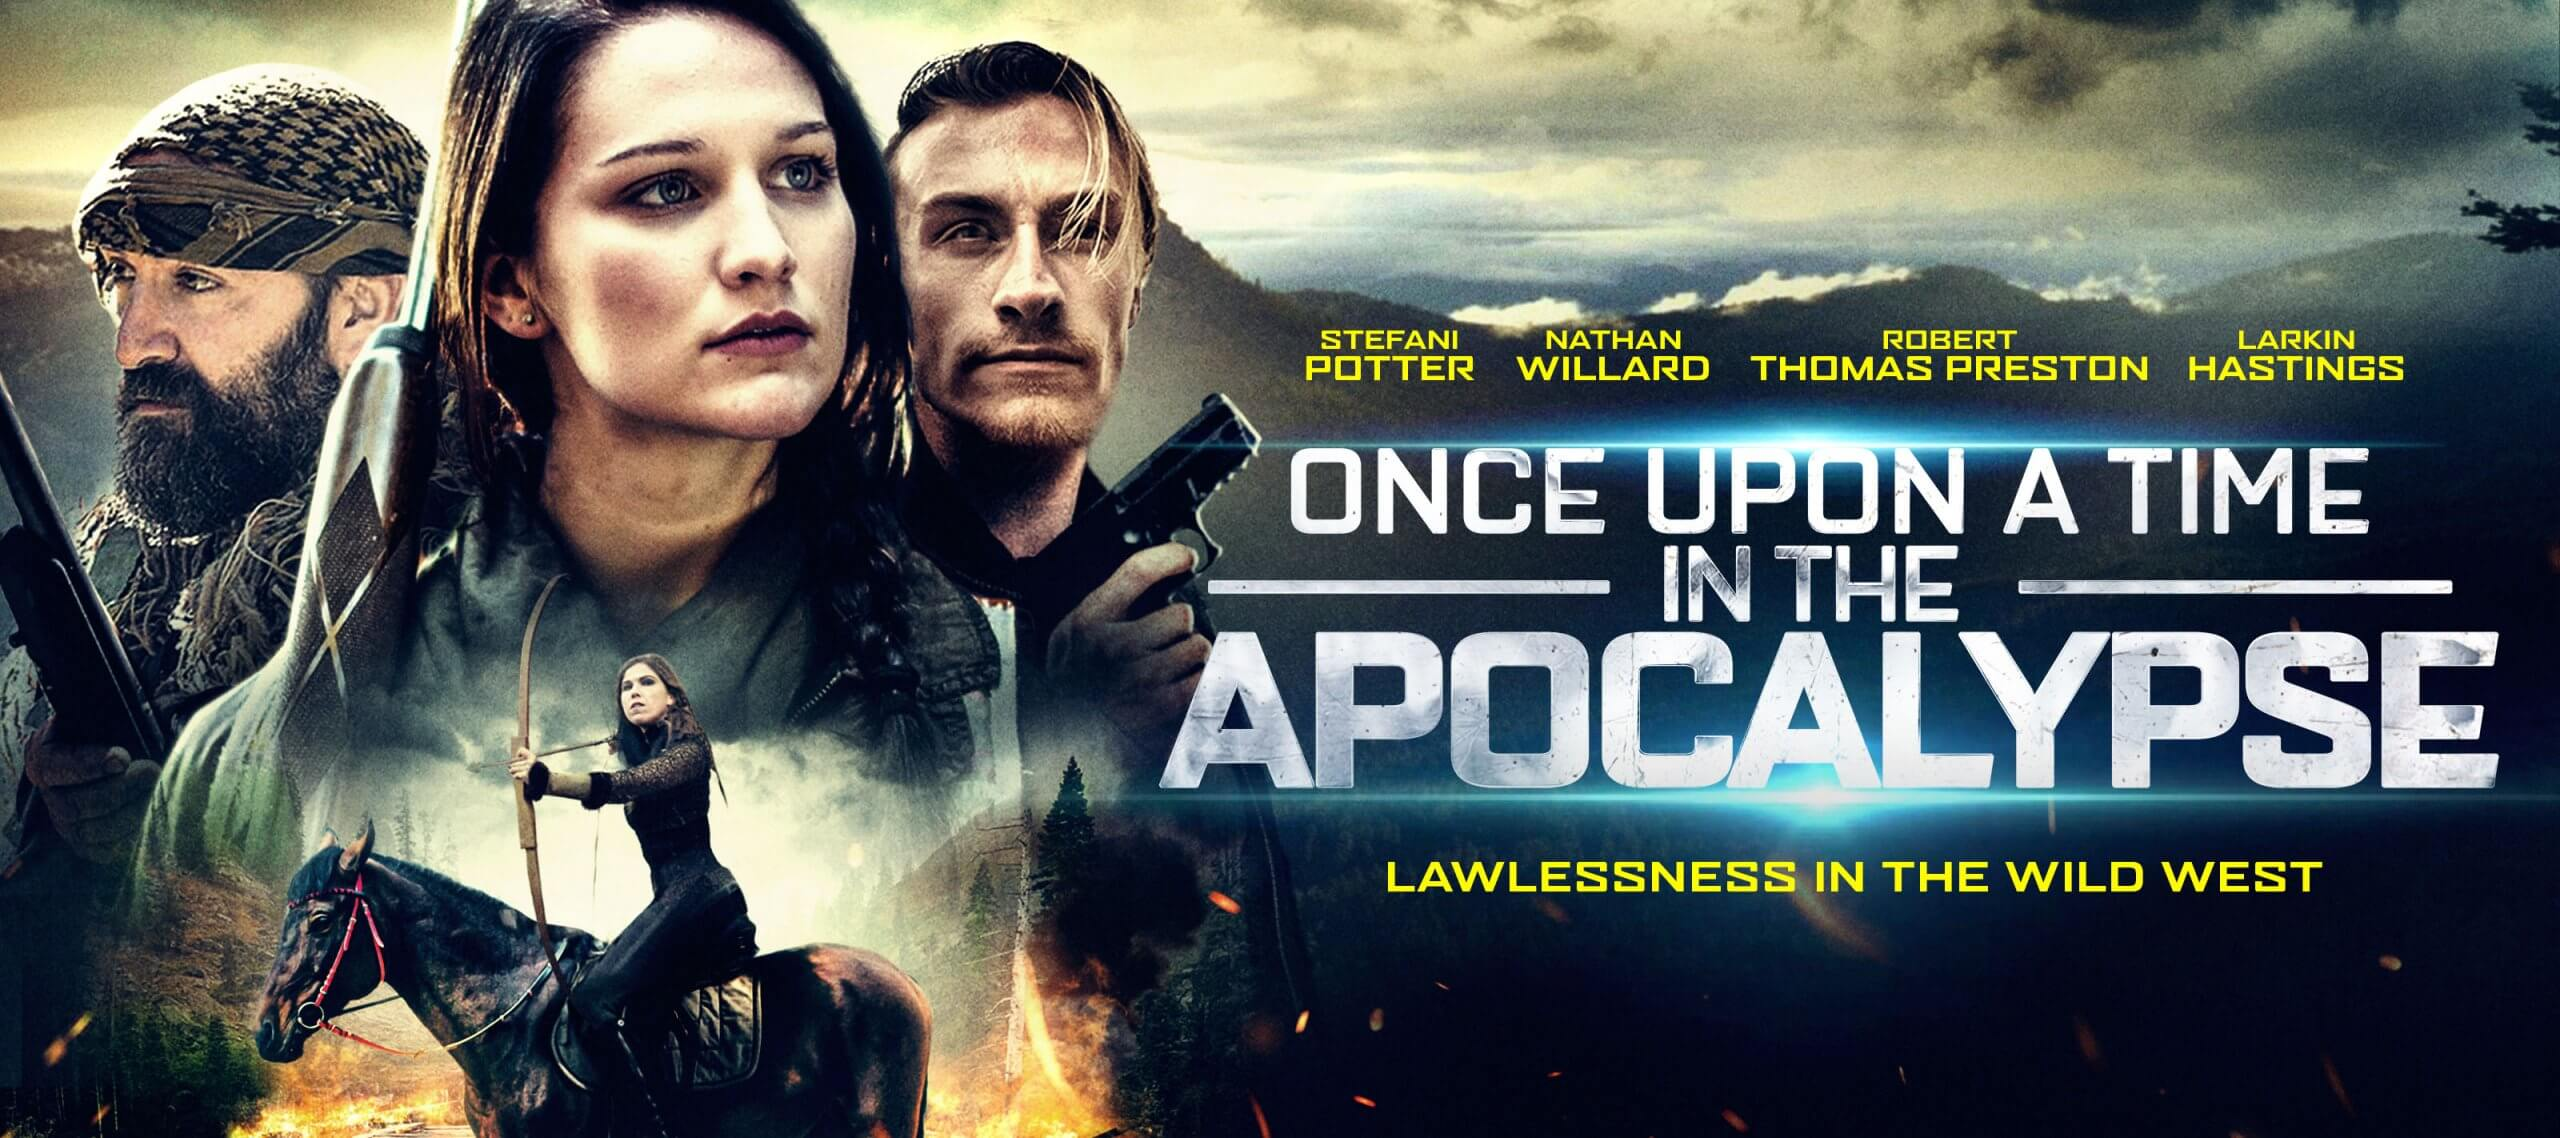 Once Upon a Time in the Apocalypse 3200x1422 1 scaled ONCE UPON A TIME IN THE APOCALYPSE